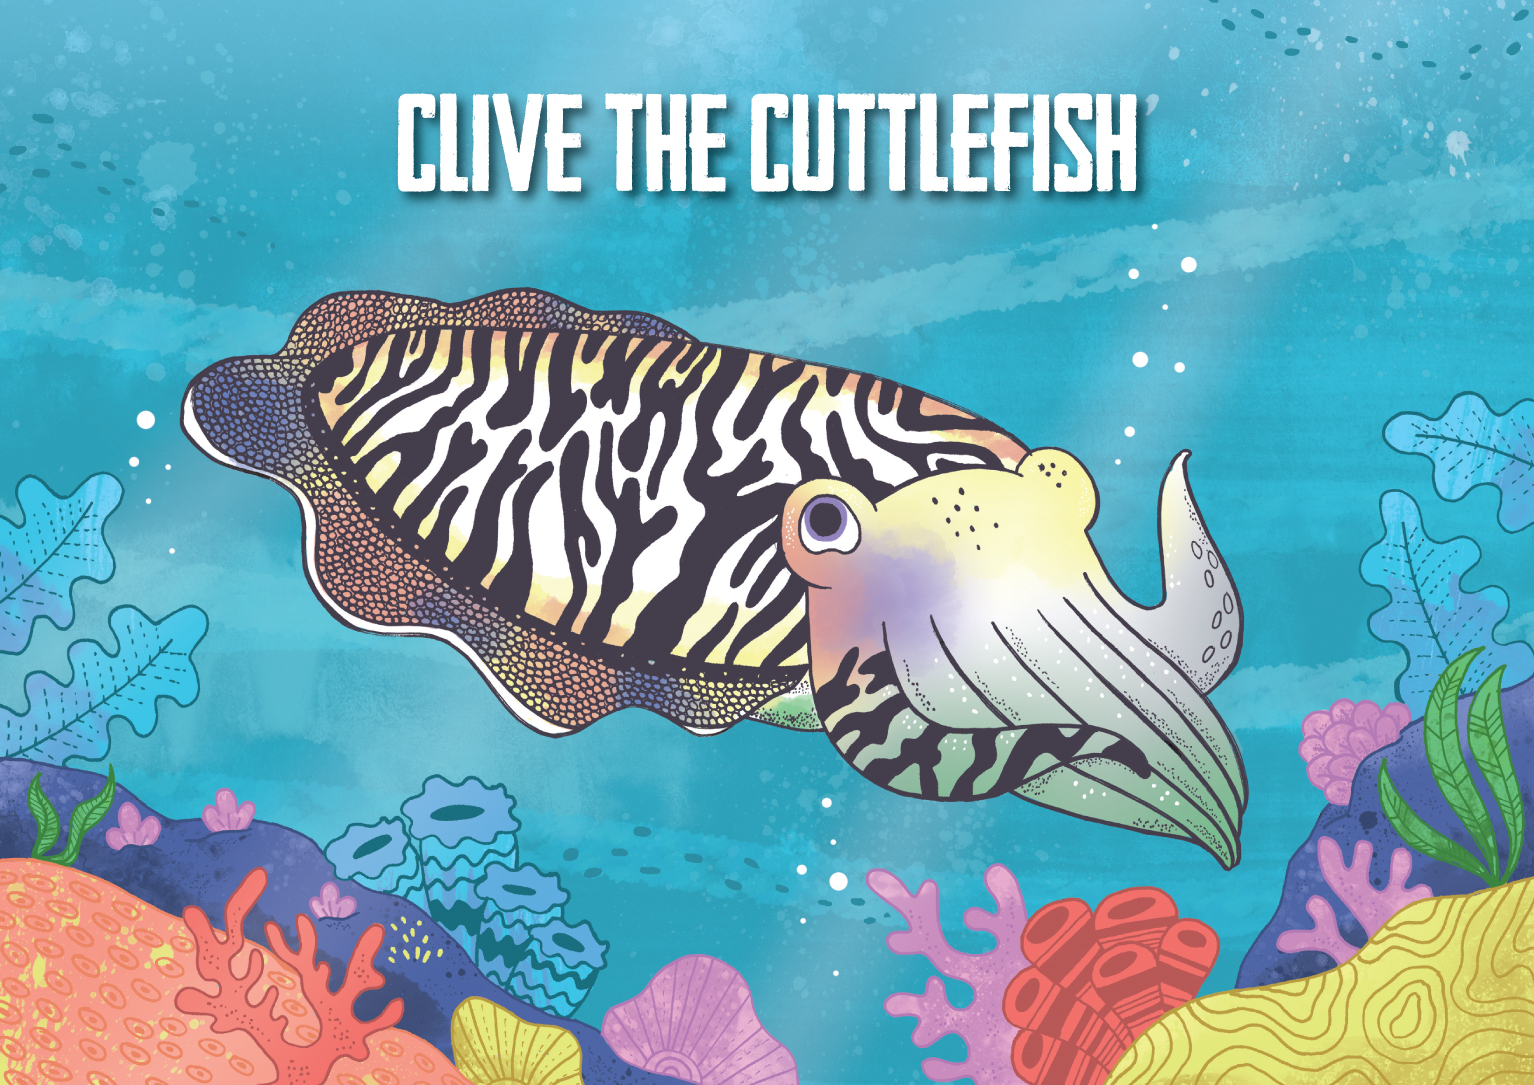 Clive the Cuttlefish cvr